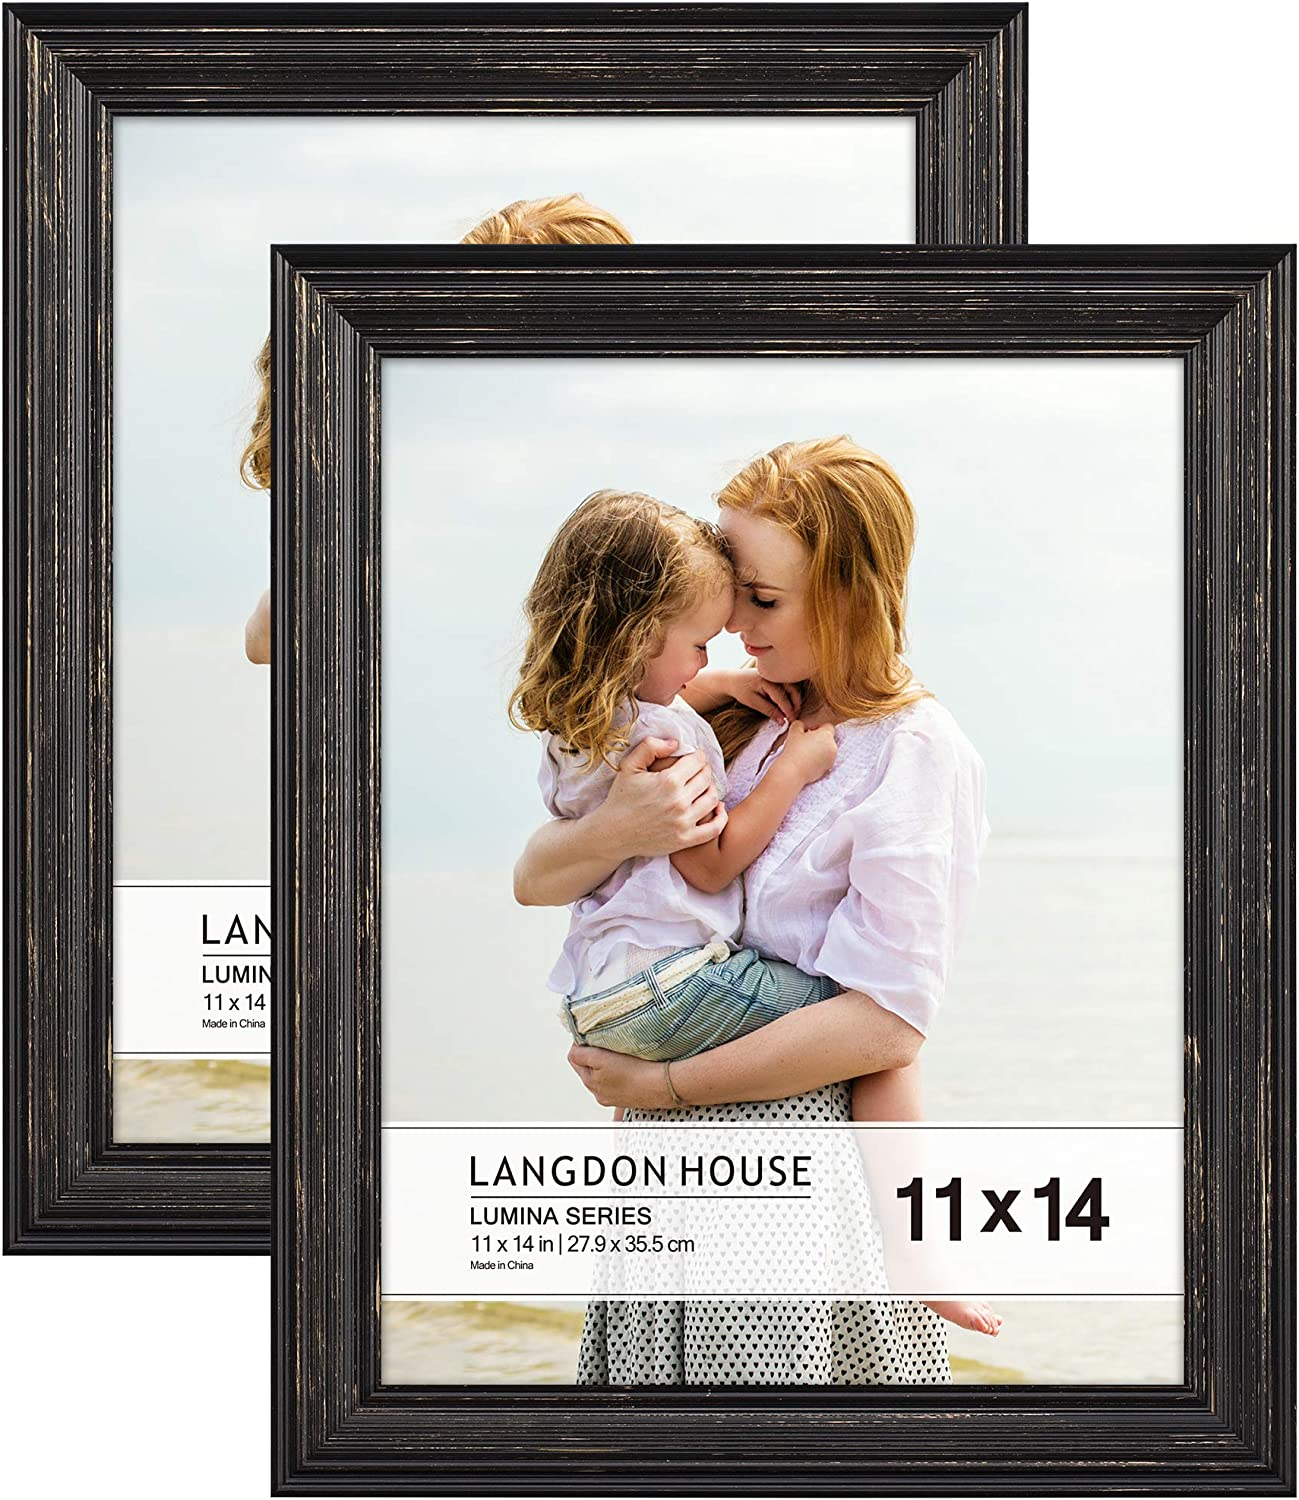 Langdon House 11x14 Real Wood Picture Frames (Barnwood Black - Gold Accents, 2 Pack), French Country Style Wooden Photo Frame 11 x 14, Lumina Collection